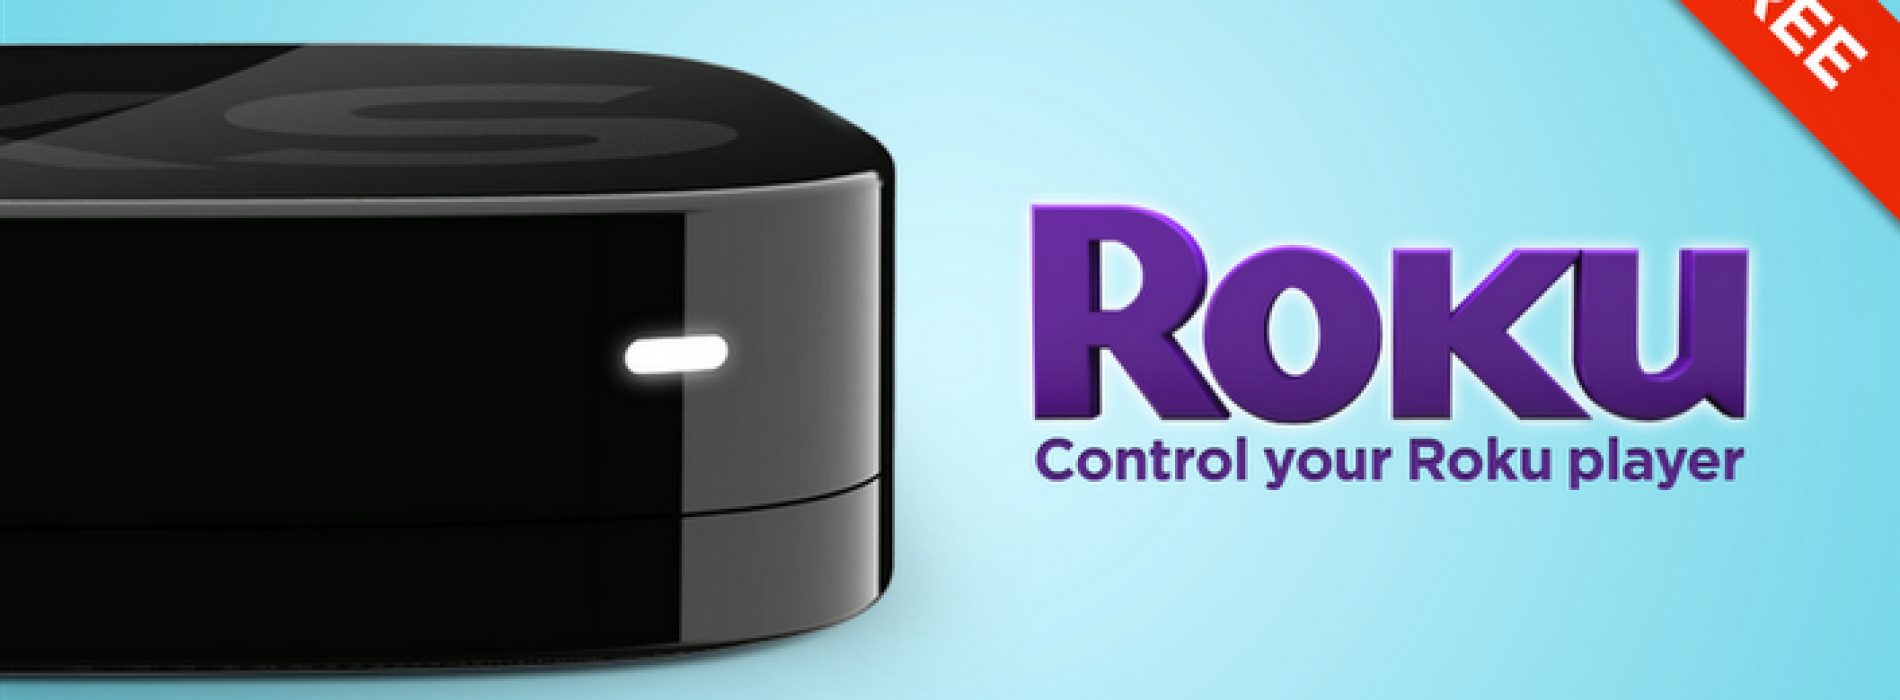 Roku announces 'Play on Roku' update for streaming photos and music